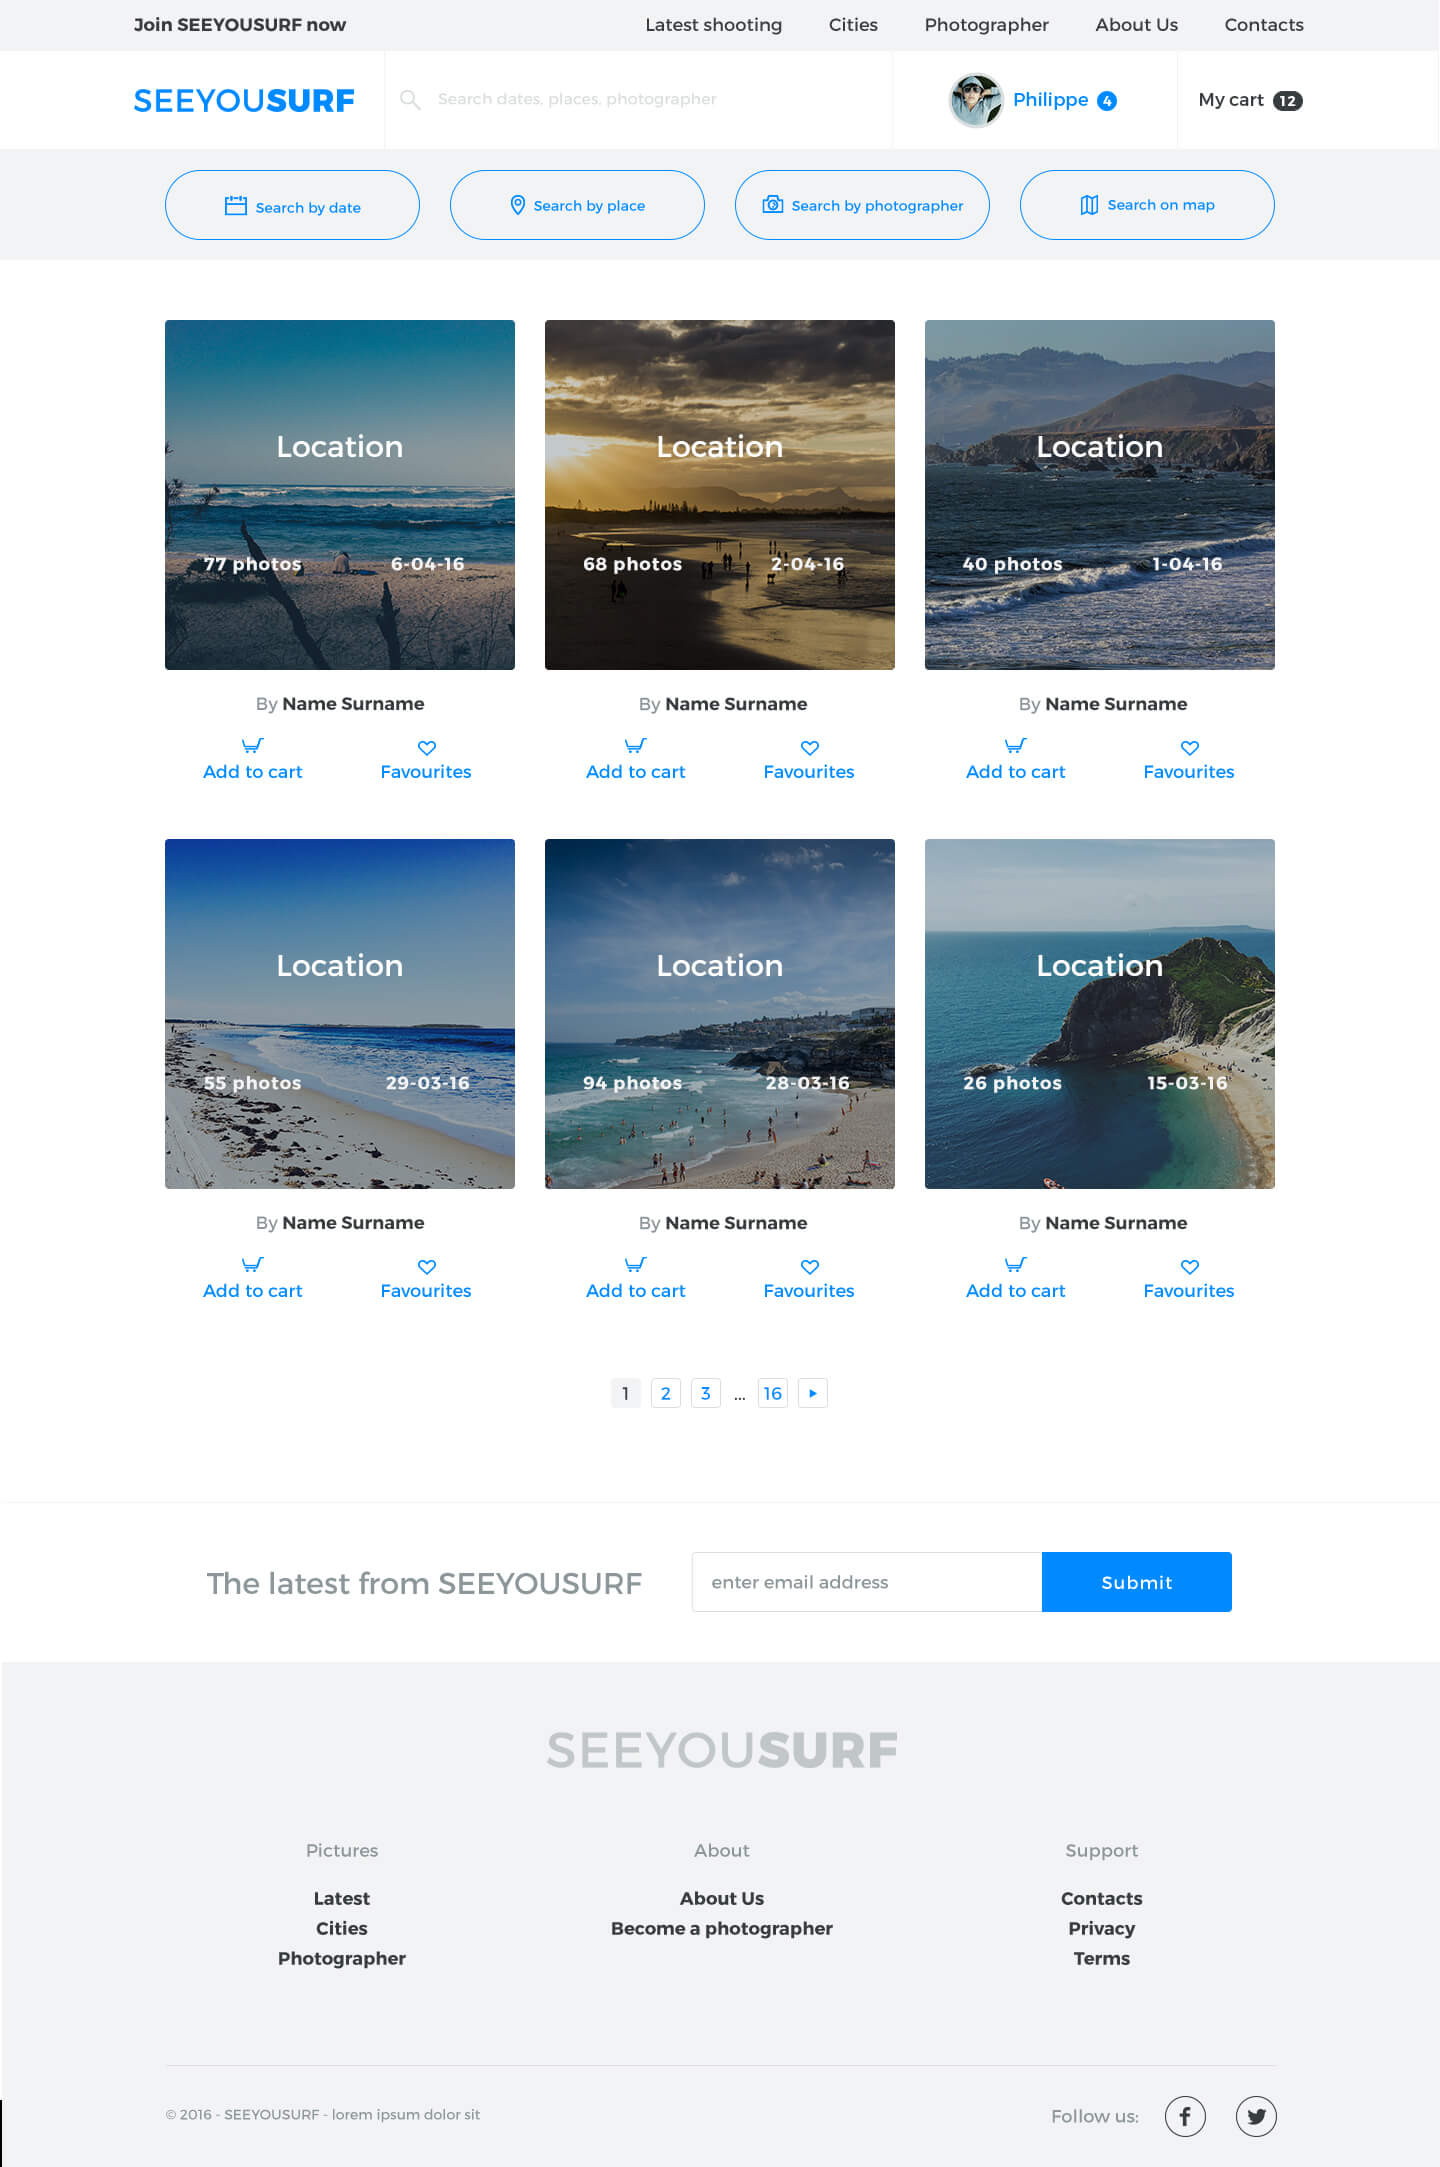 SeeYouSurf_site_02_Search_Location